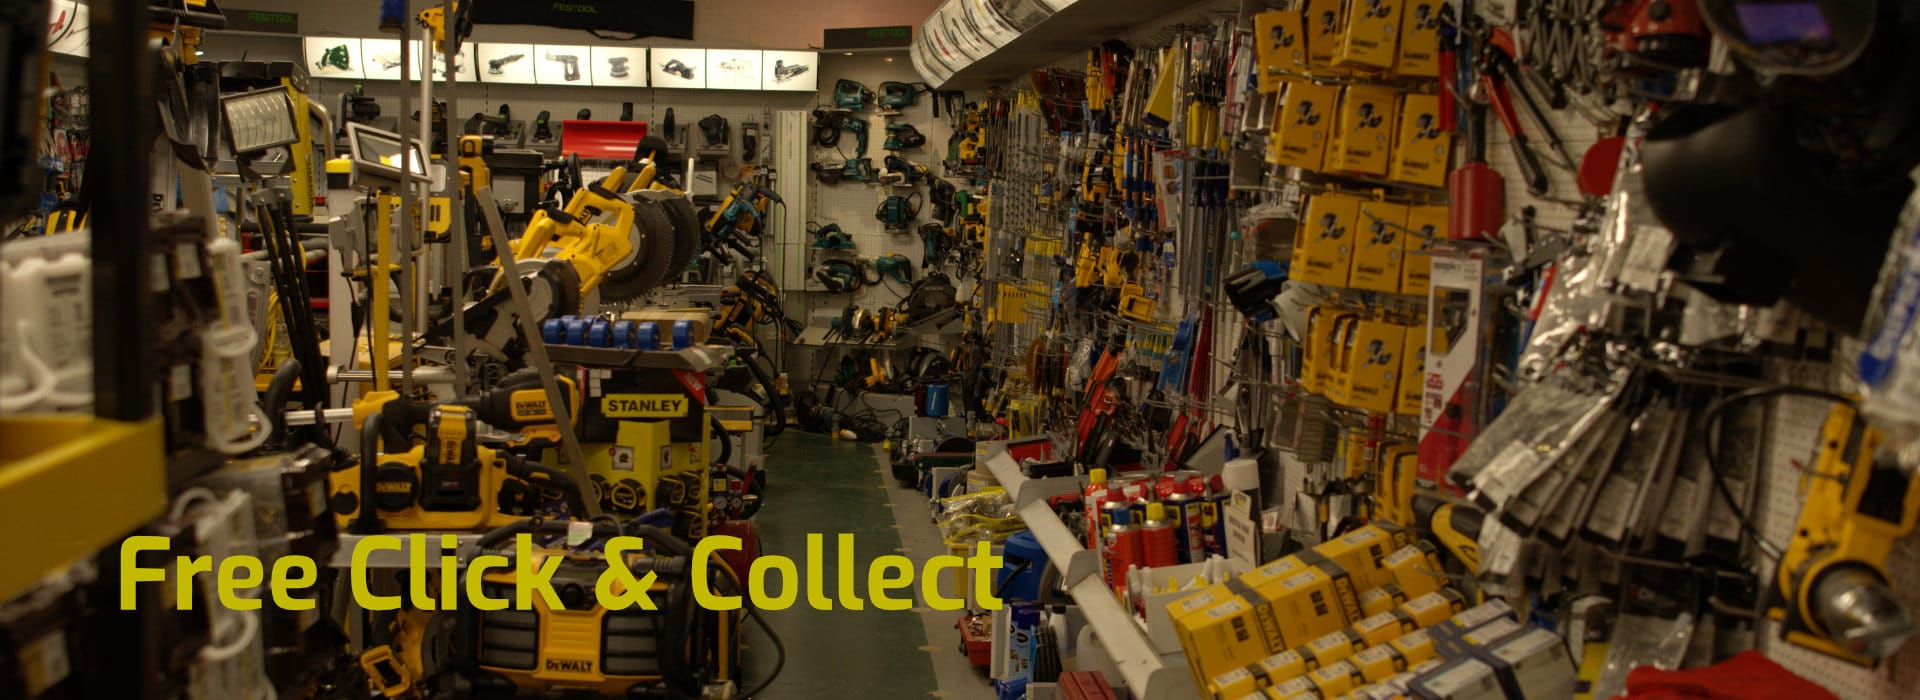 Tool Eequip Tool shop Naas Free Click and collect